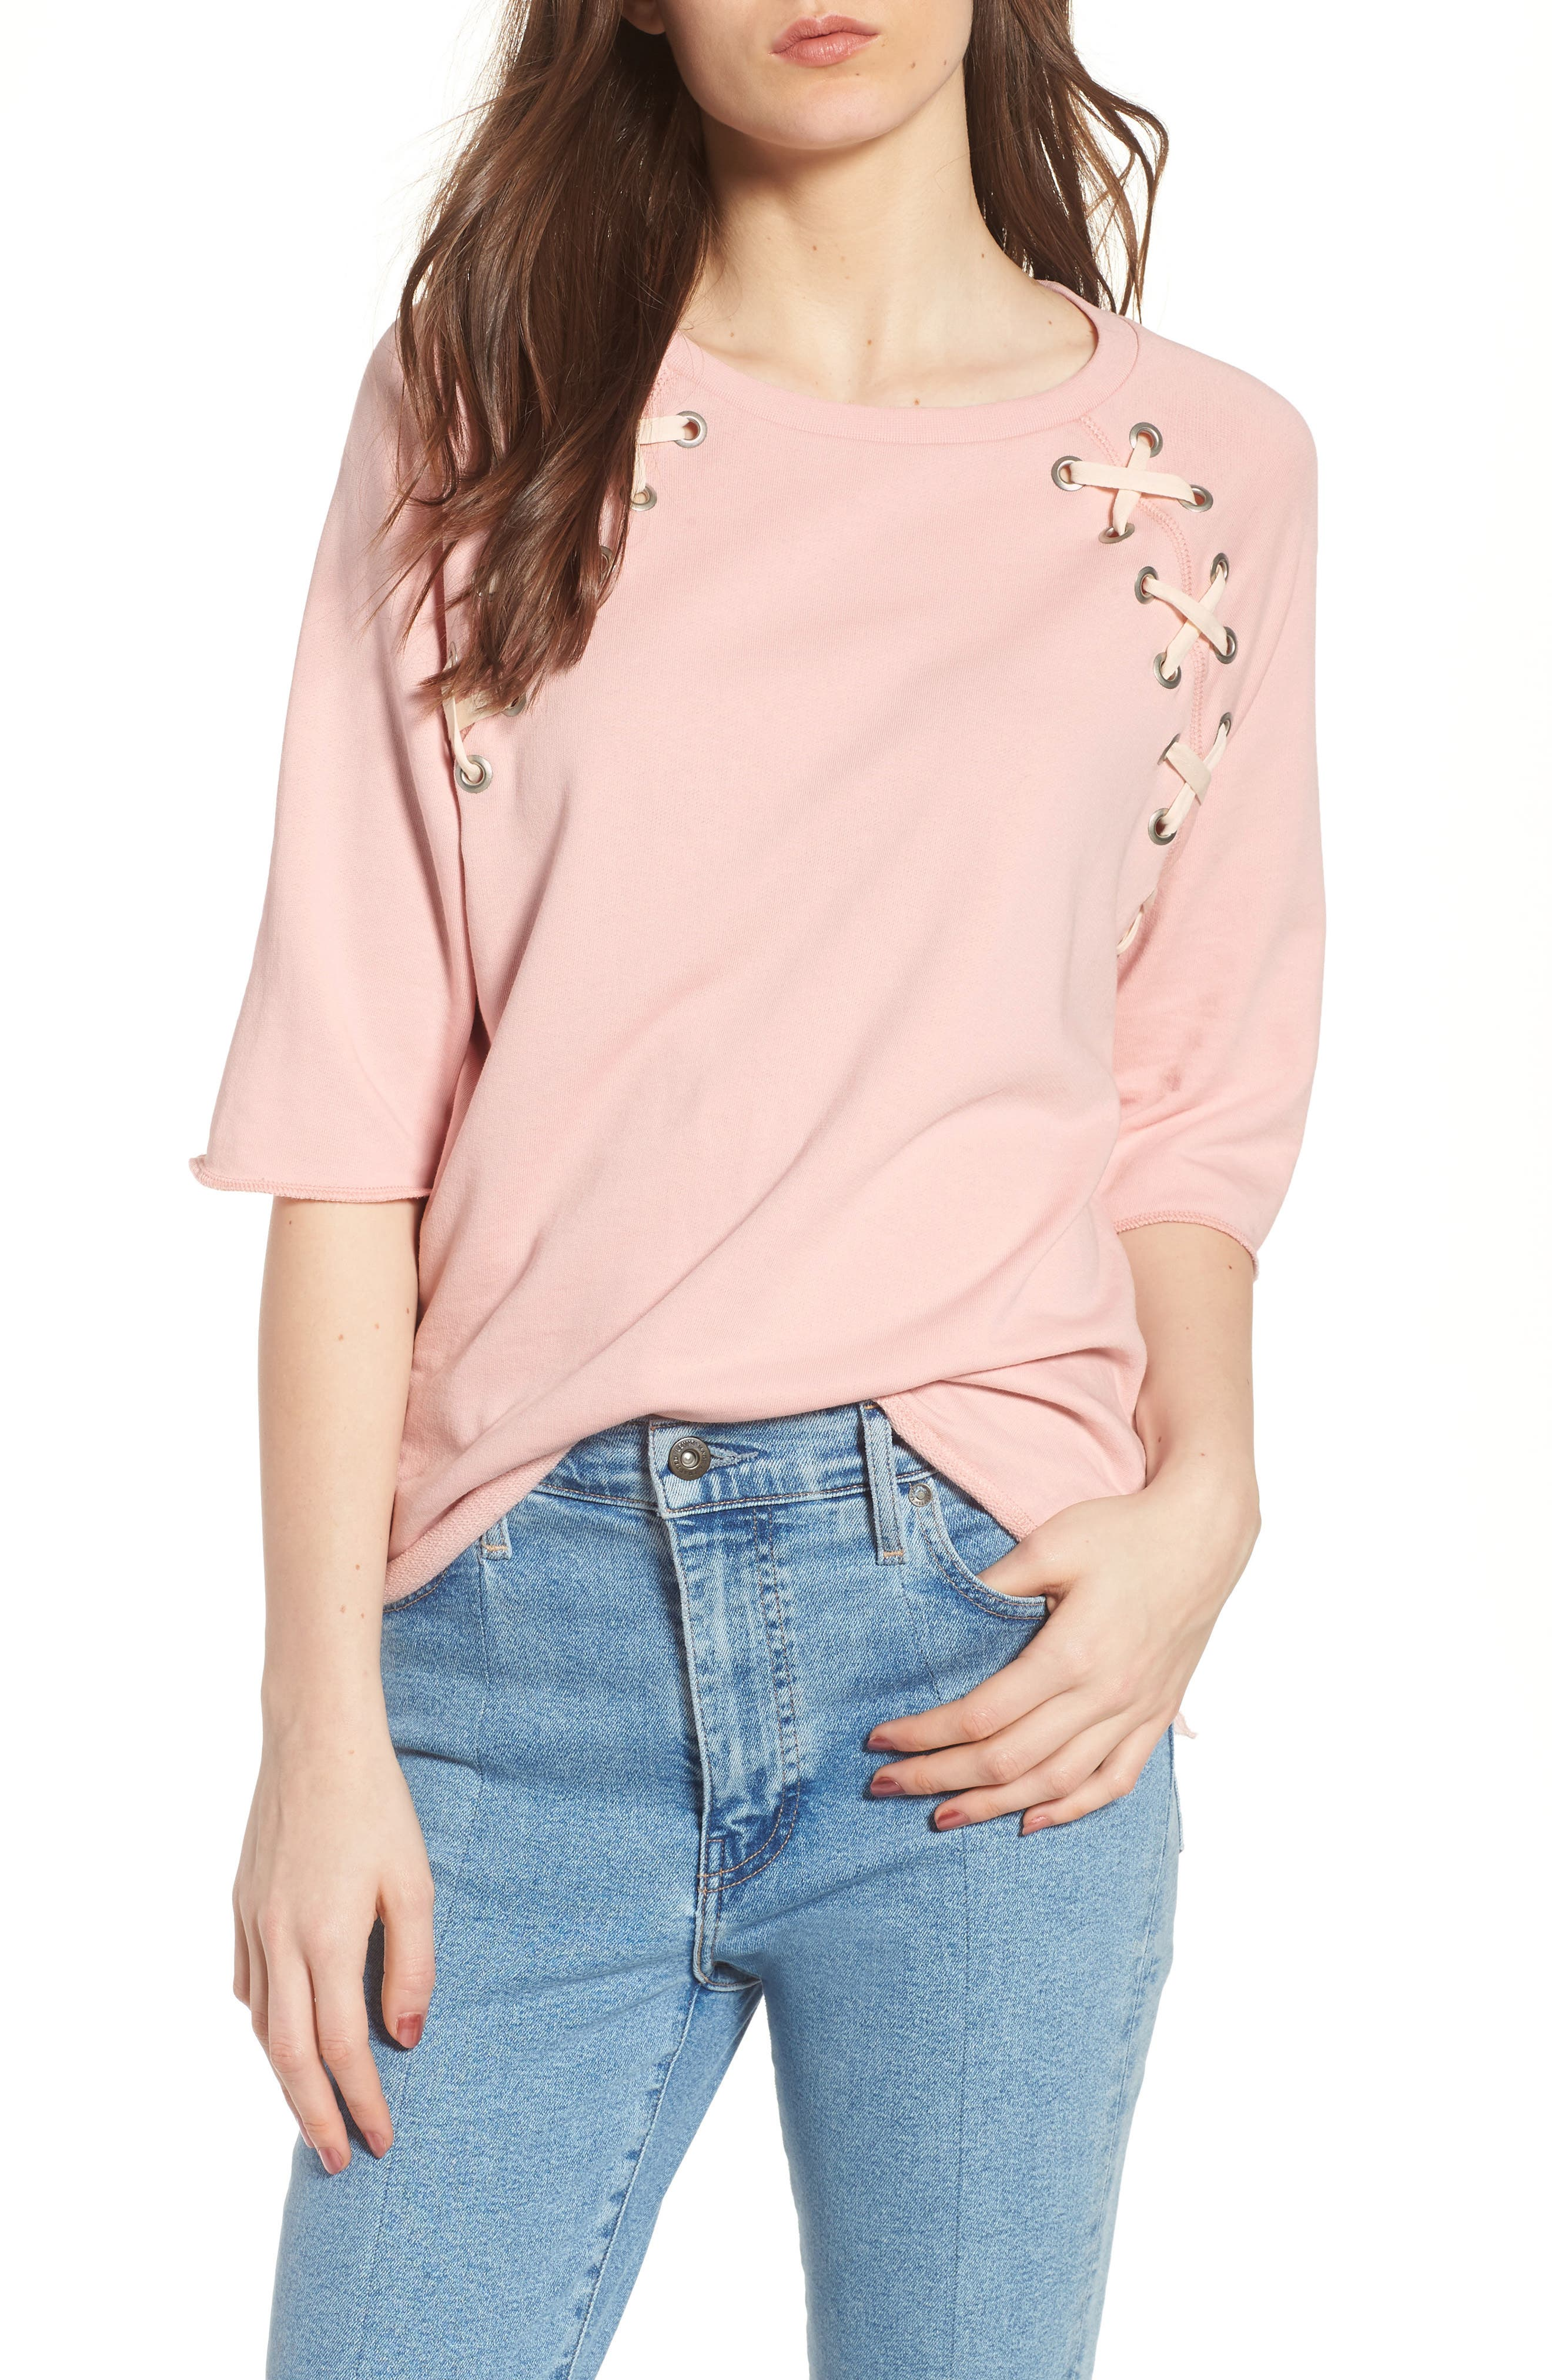 South Parade Julie - Zigzag Eyelets Terry Top